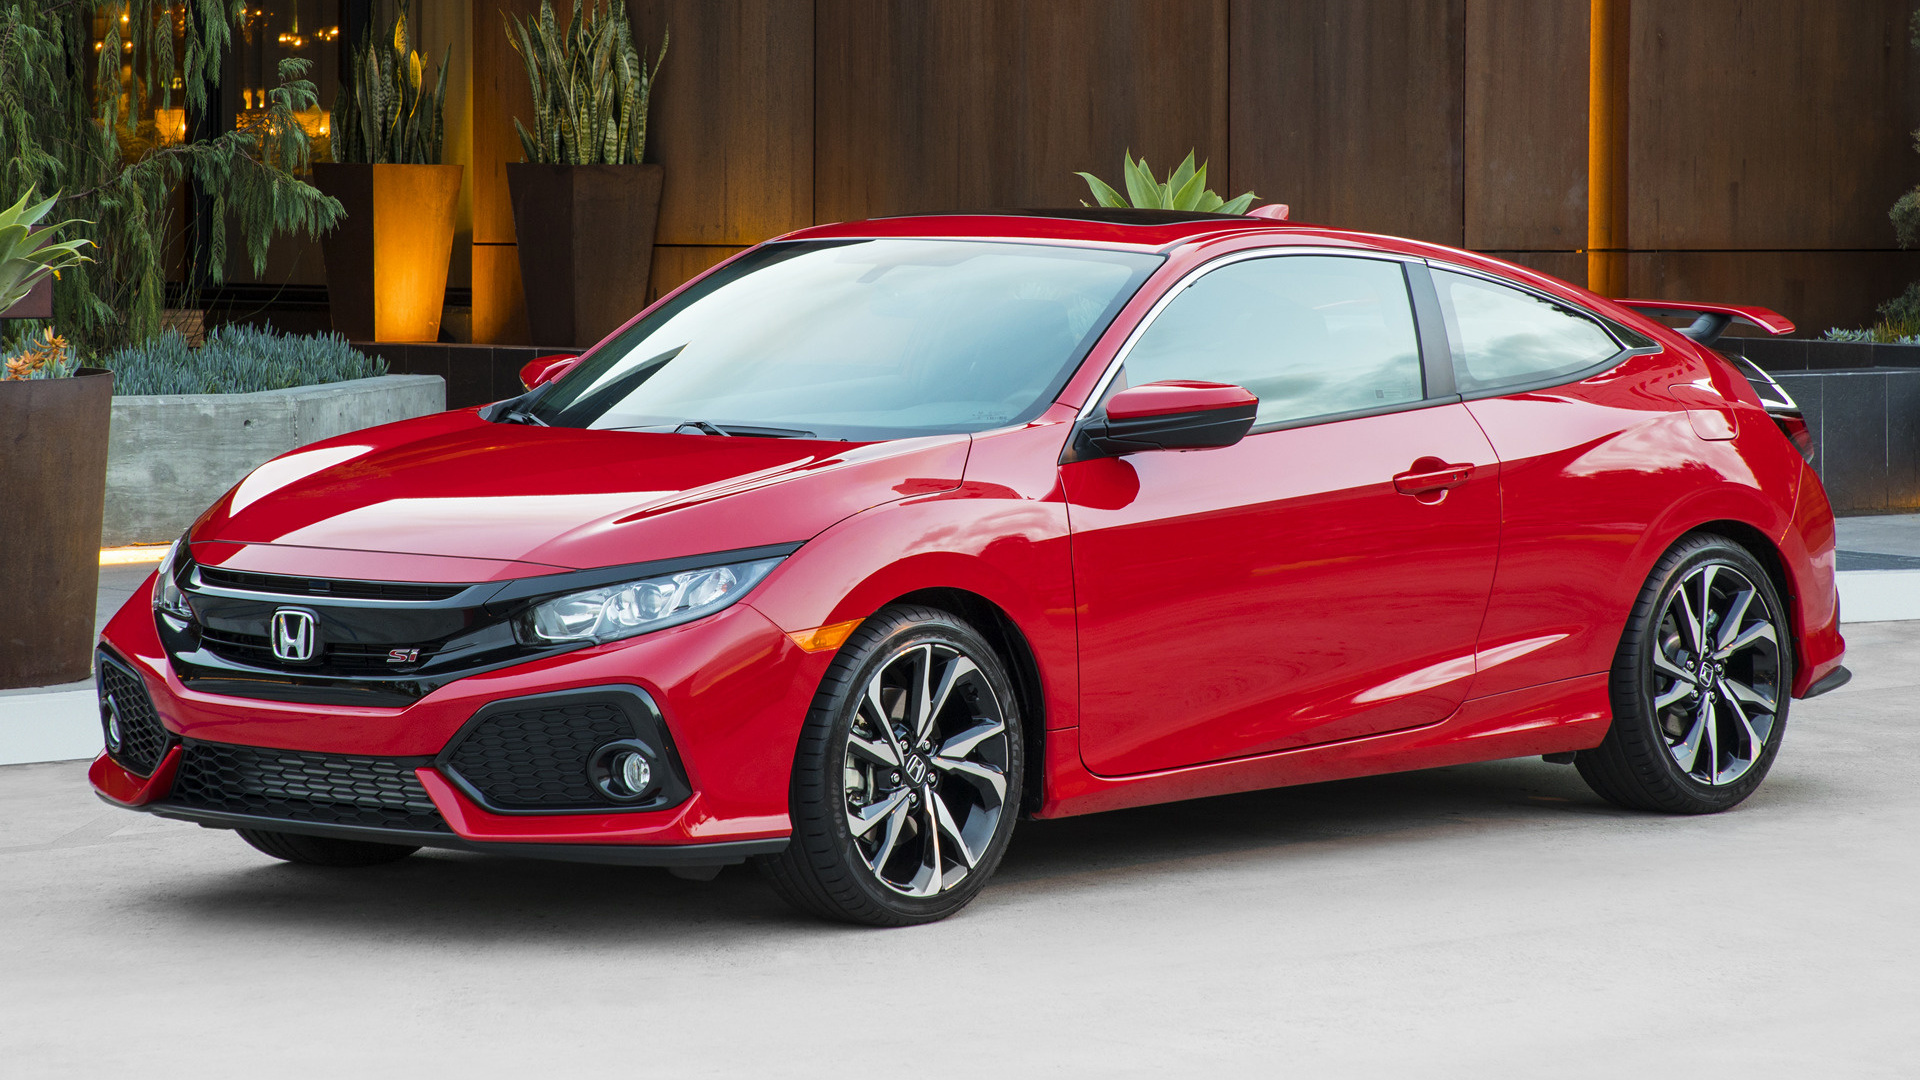 2018 Honda Accord >> 2017 Honda Civic Si Coupe (US) - Wallpapers and HD Images | Car Pixel